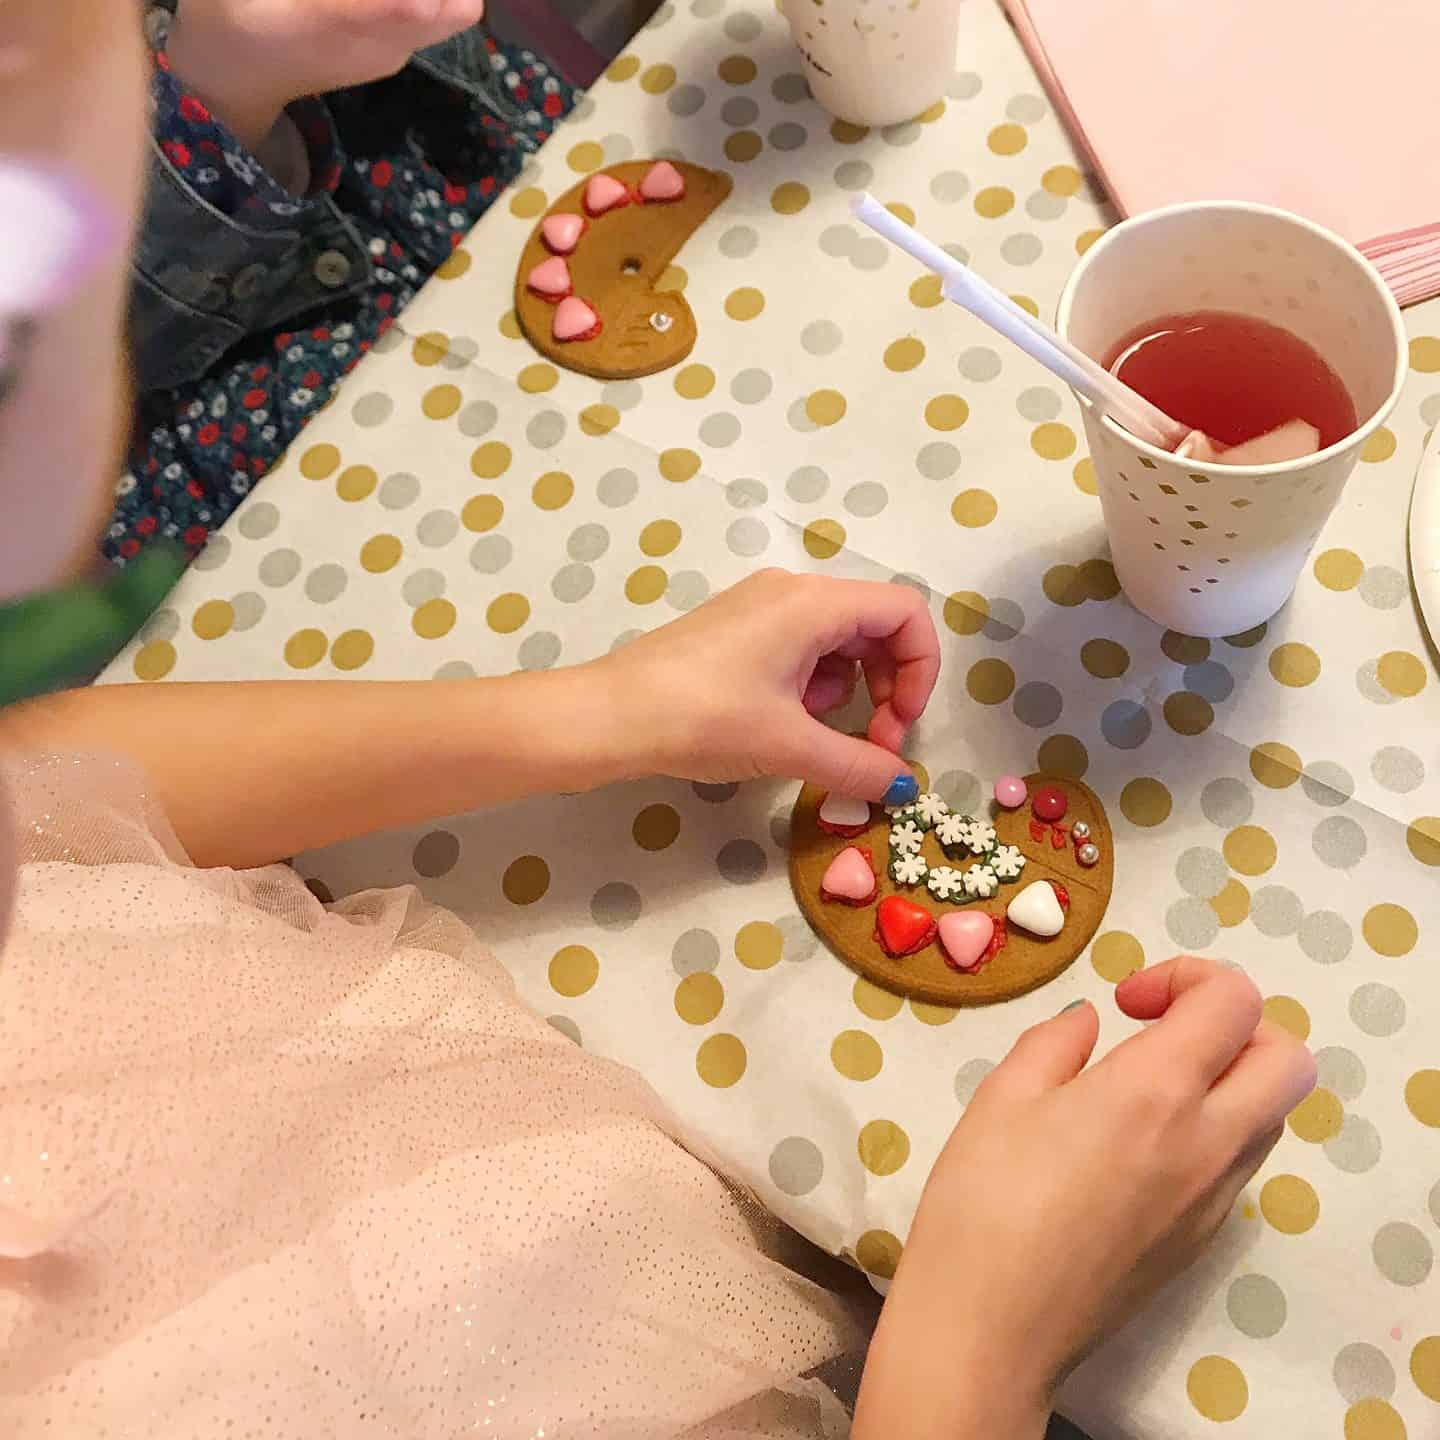 Biscuit decorating at a creative kids birthday party